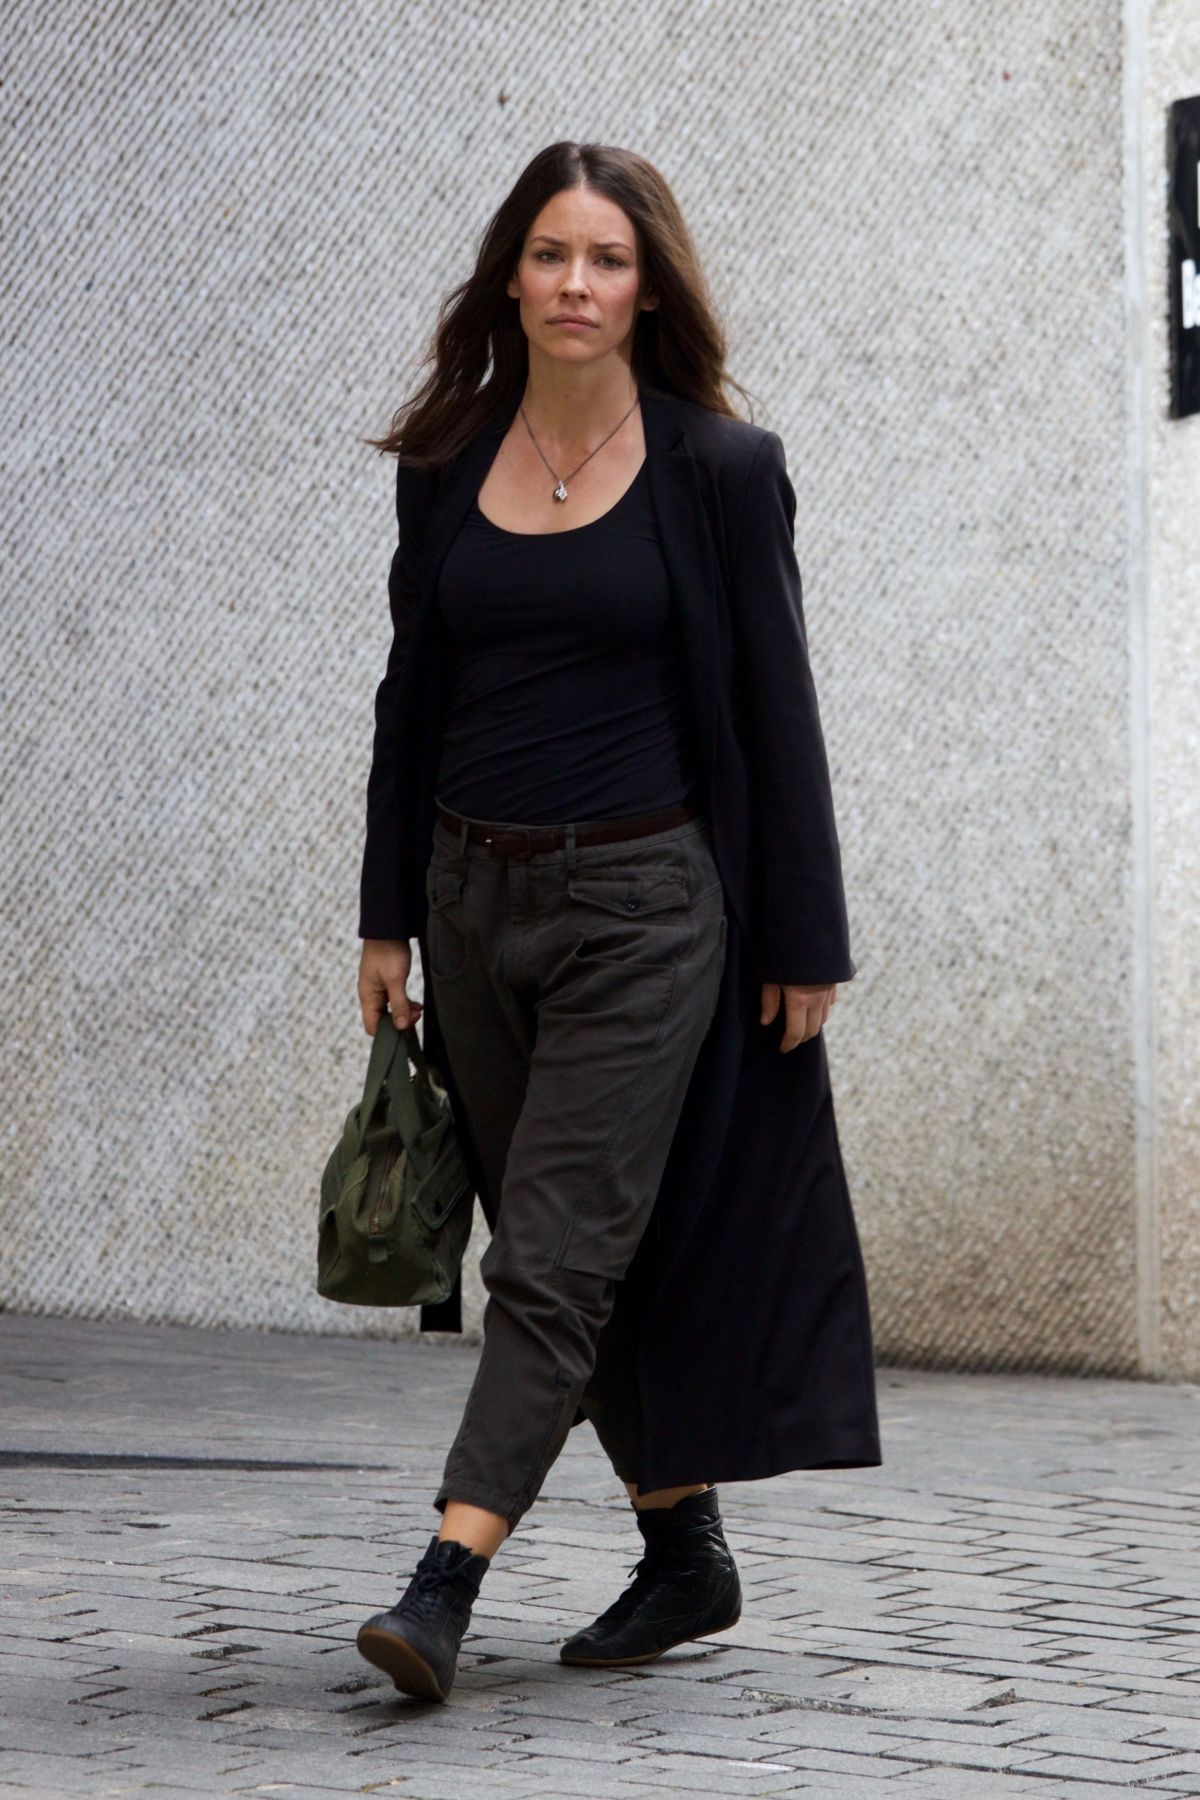 EVANGELINE LILLY Arrive on the Set of Ant-man and the Wasp ...